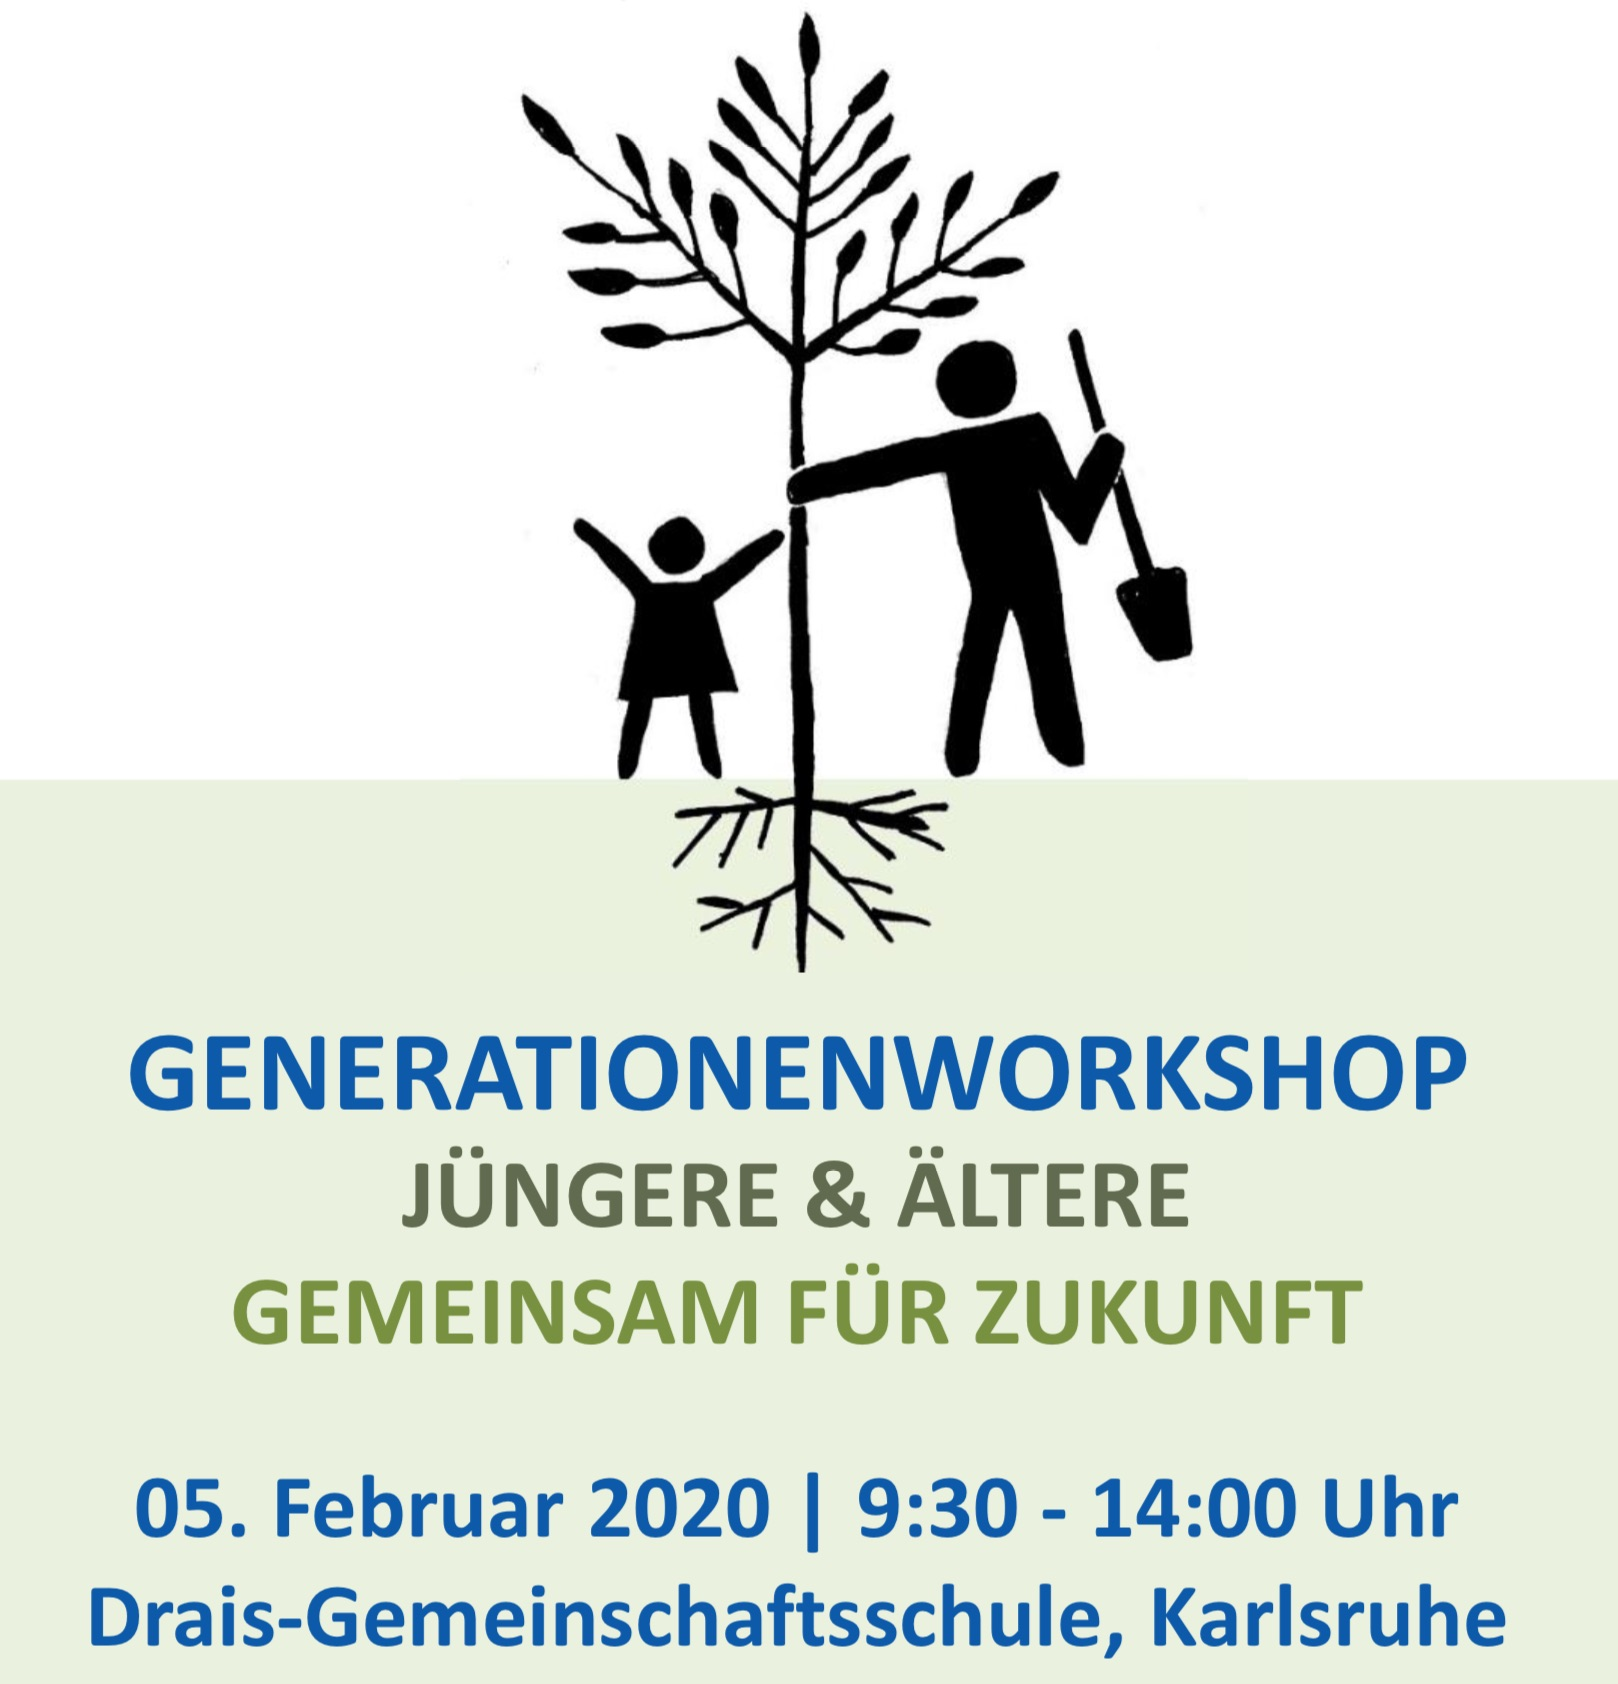 Generationenworkshop